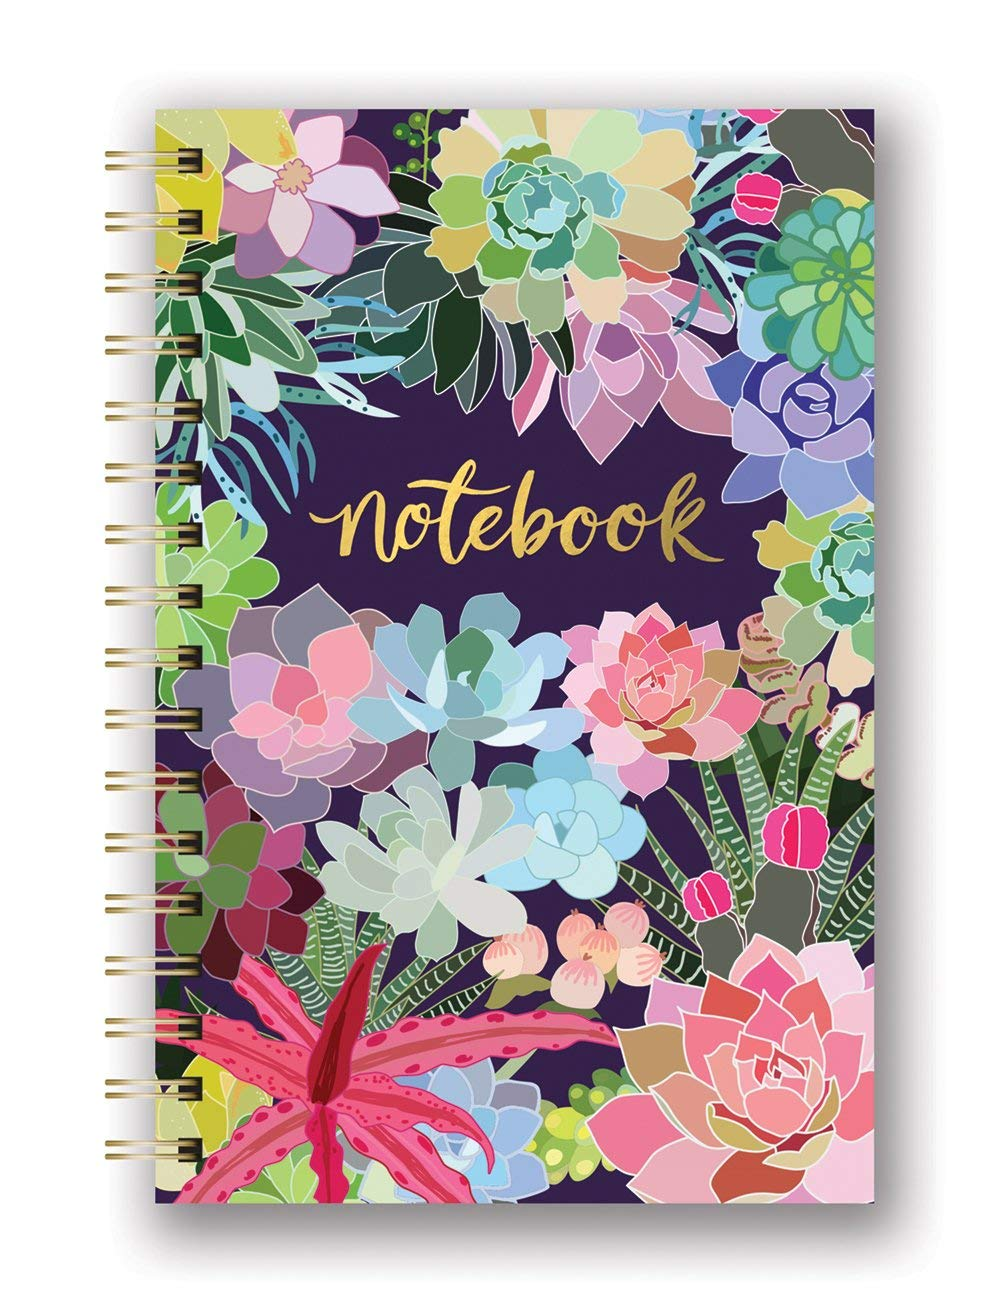 Studio Oh! - Succulent Paradise Spiral Notebook Medium Hardcover by Mia Charro